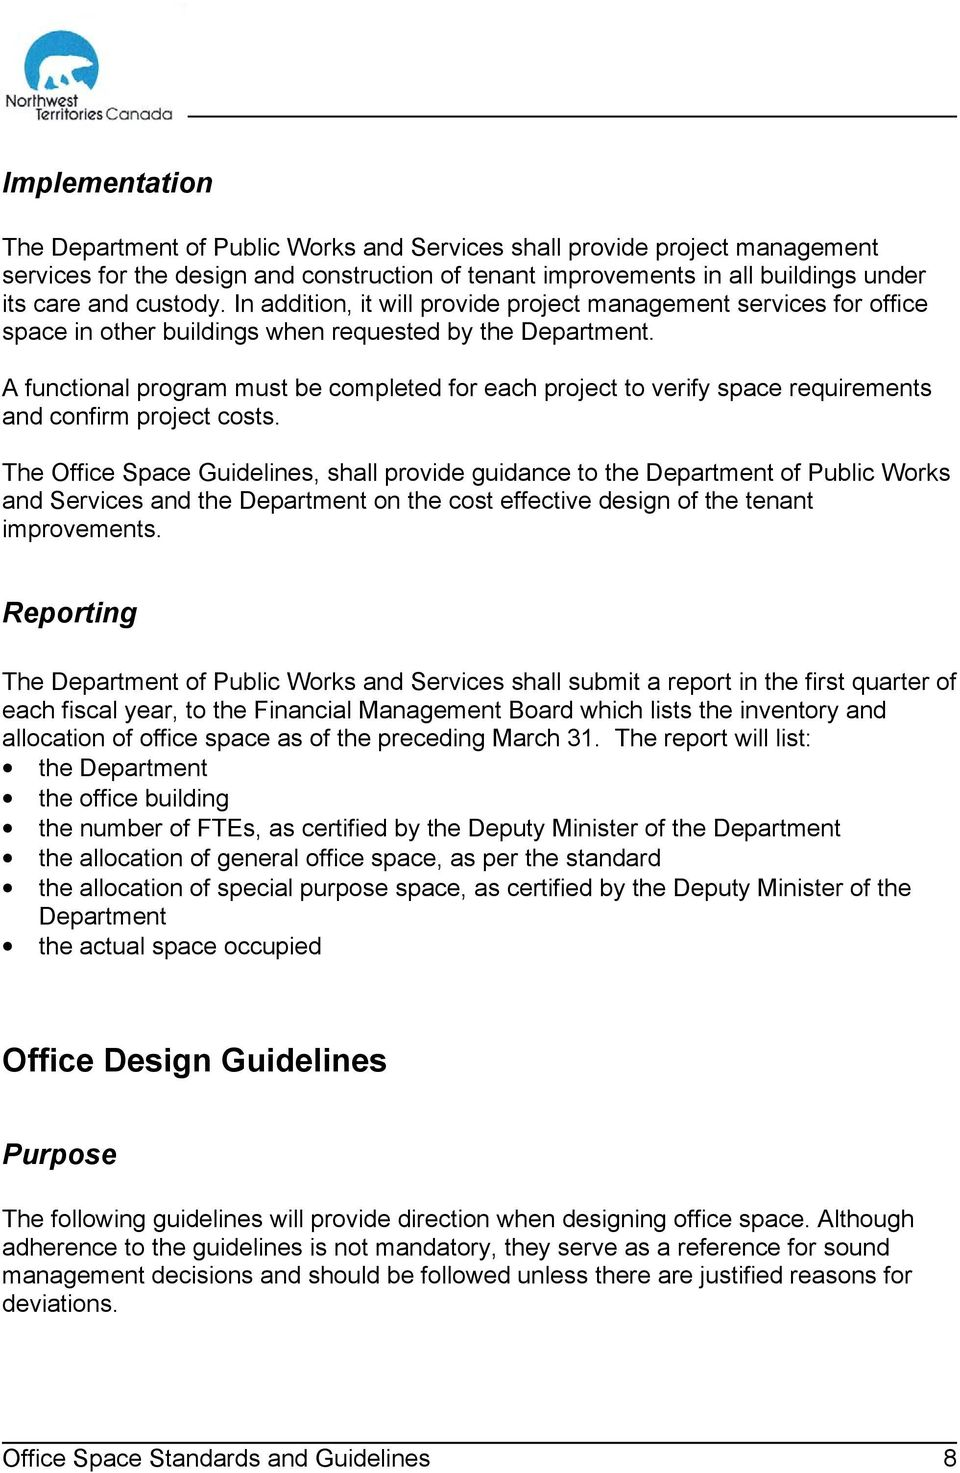 office space standards and guidelines pdf